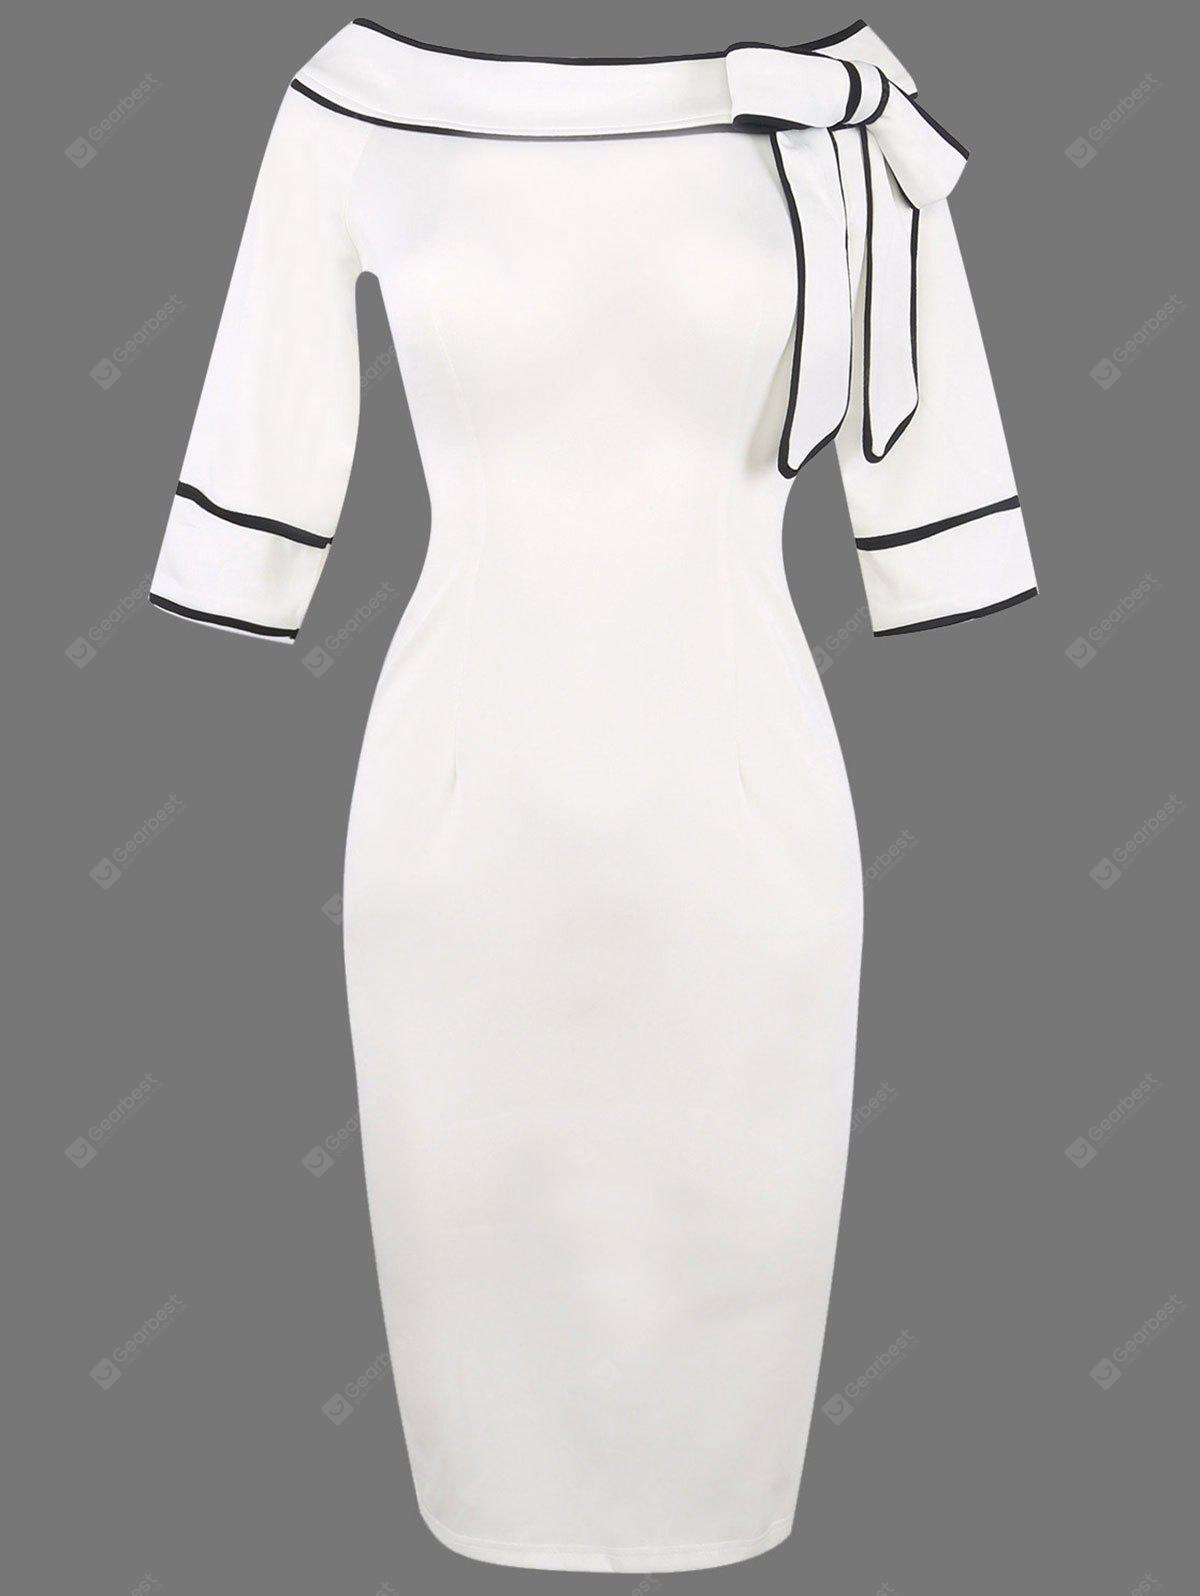 WHITE XL Boat Neck Bowknot Embellished Pencli Dress